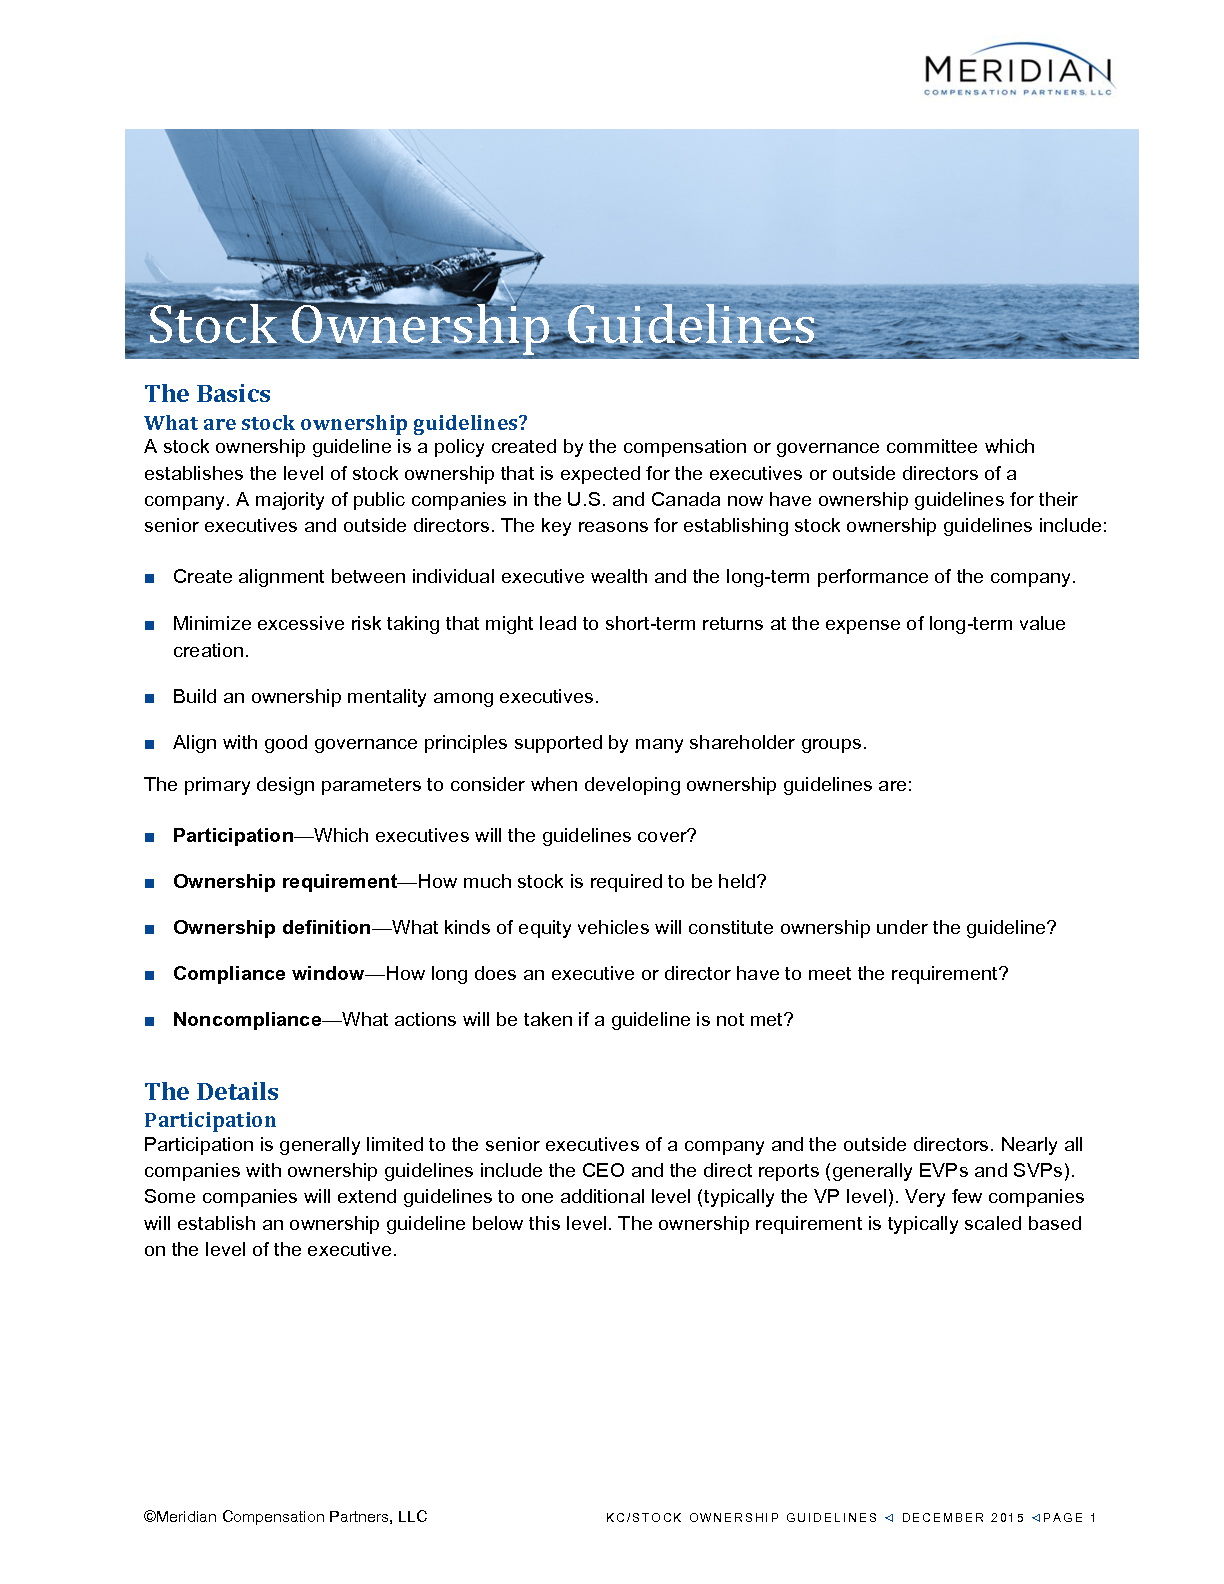 Stock Ownership Guidelines (PDF)